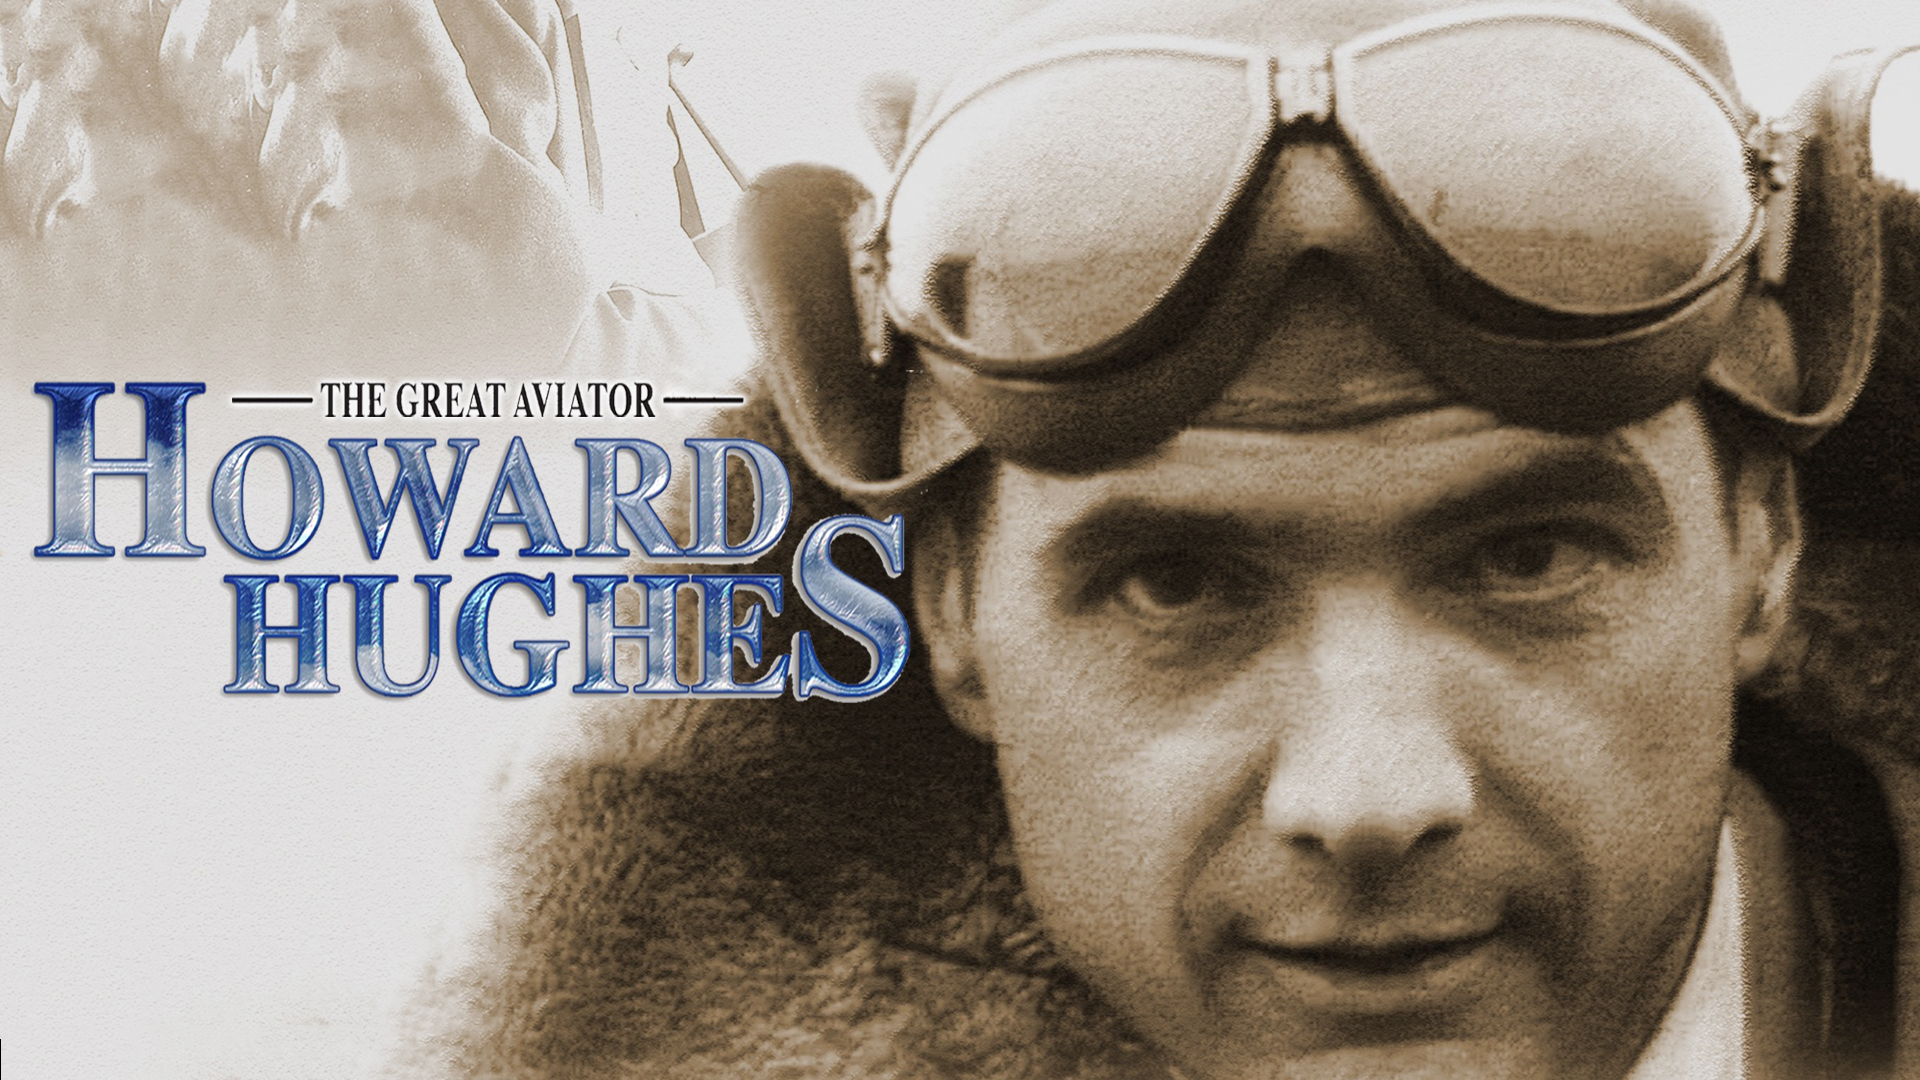 Howard Hughes: The Great Aviator